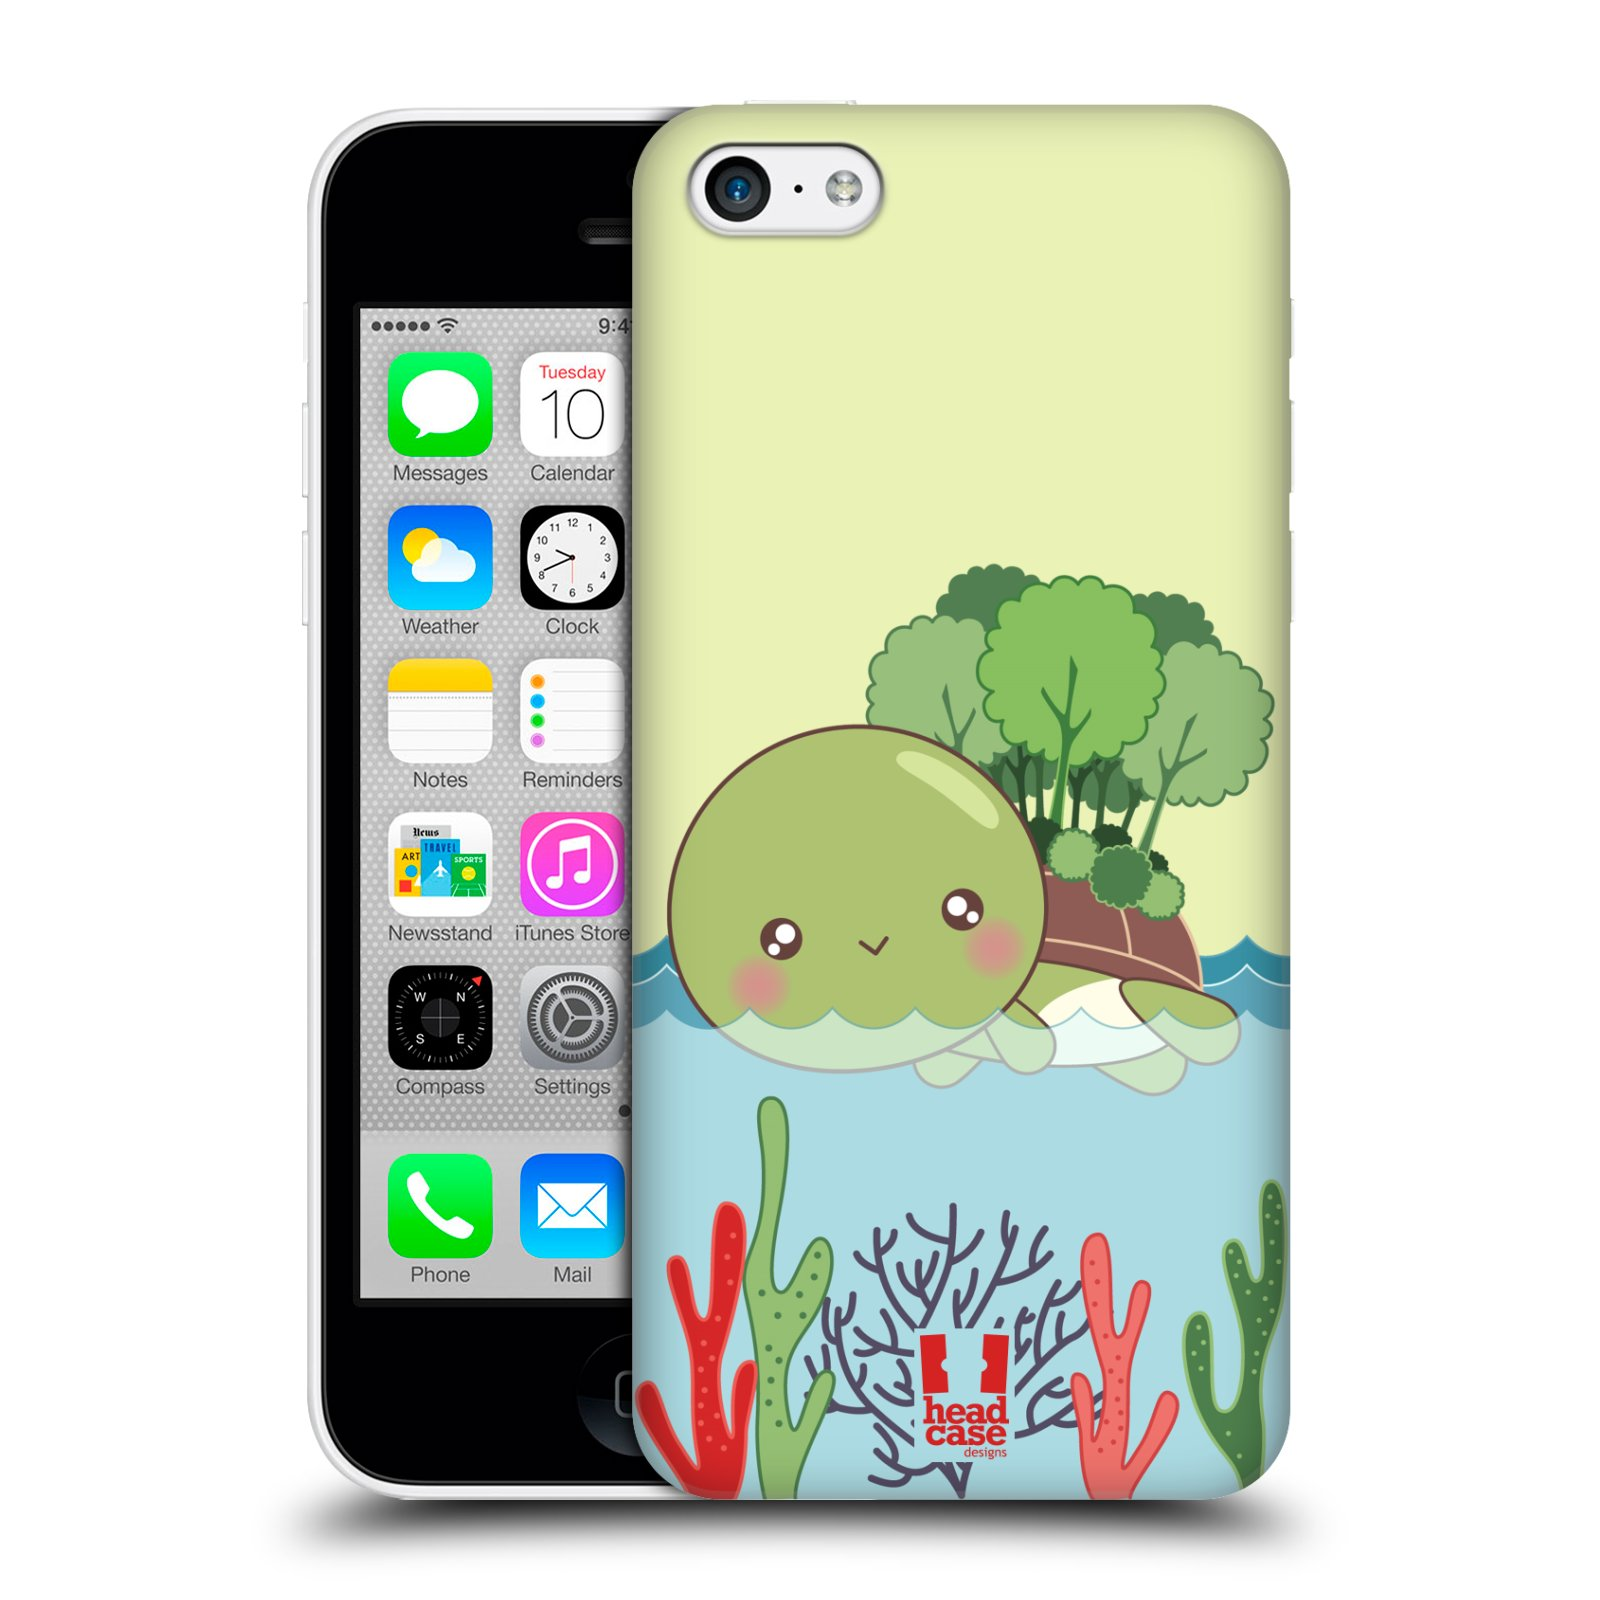 HEAD CASE DESIGNS KAWAII TURTLES HARD BACK CASE FOR APPLE iPHONE 5C